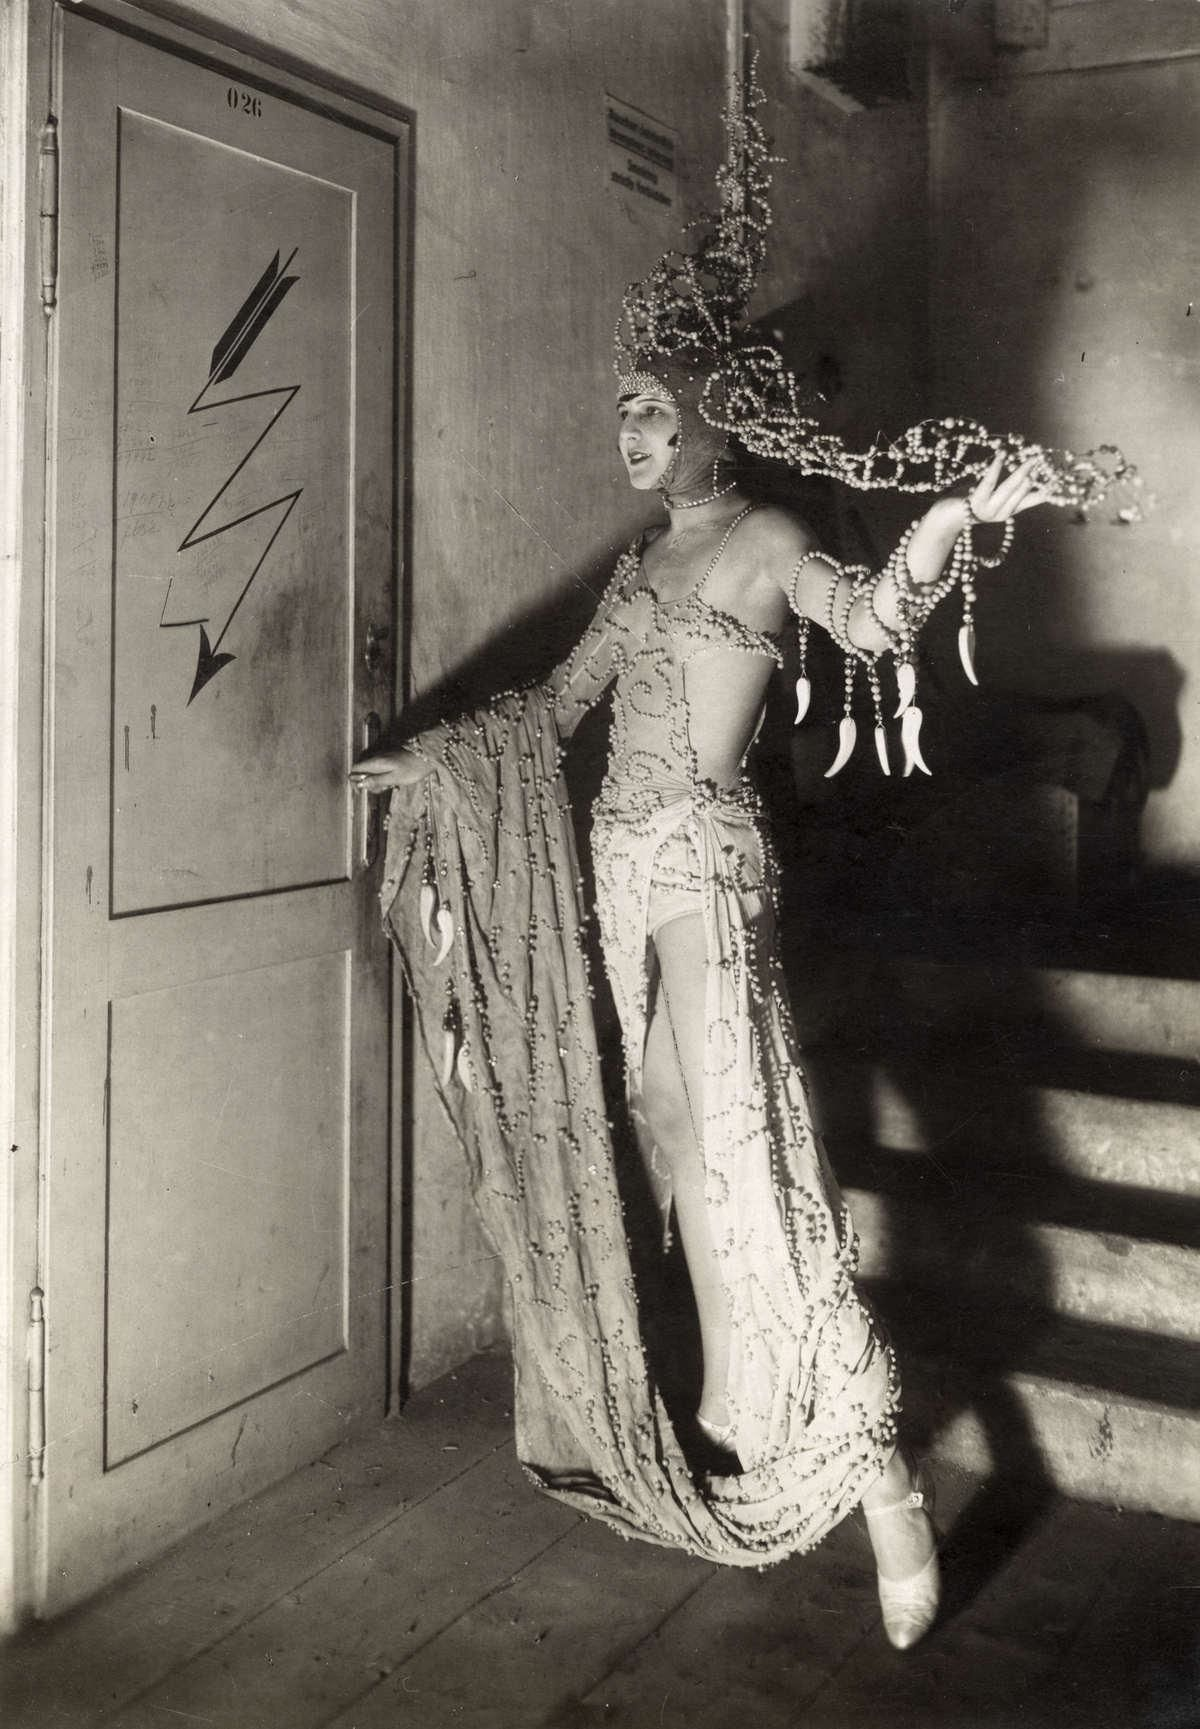 Behind the scenes of the Vienna revue Alles aus Liebe at the Stadttheater in Vienna, under the direction of Ernst Marischka. Photographer unknown, 1928.